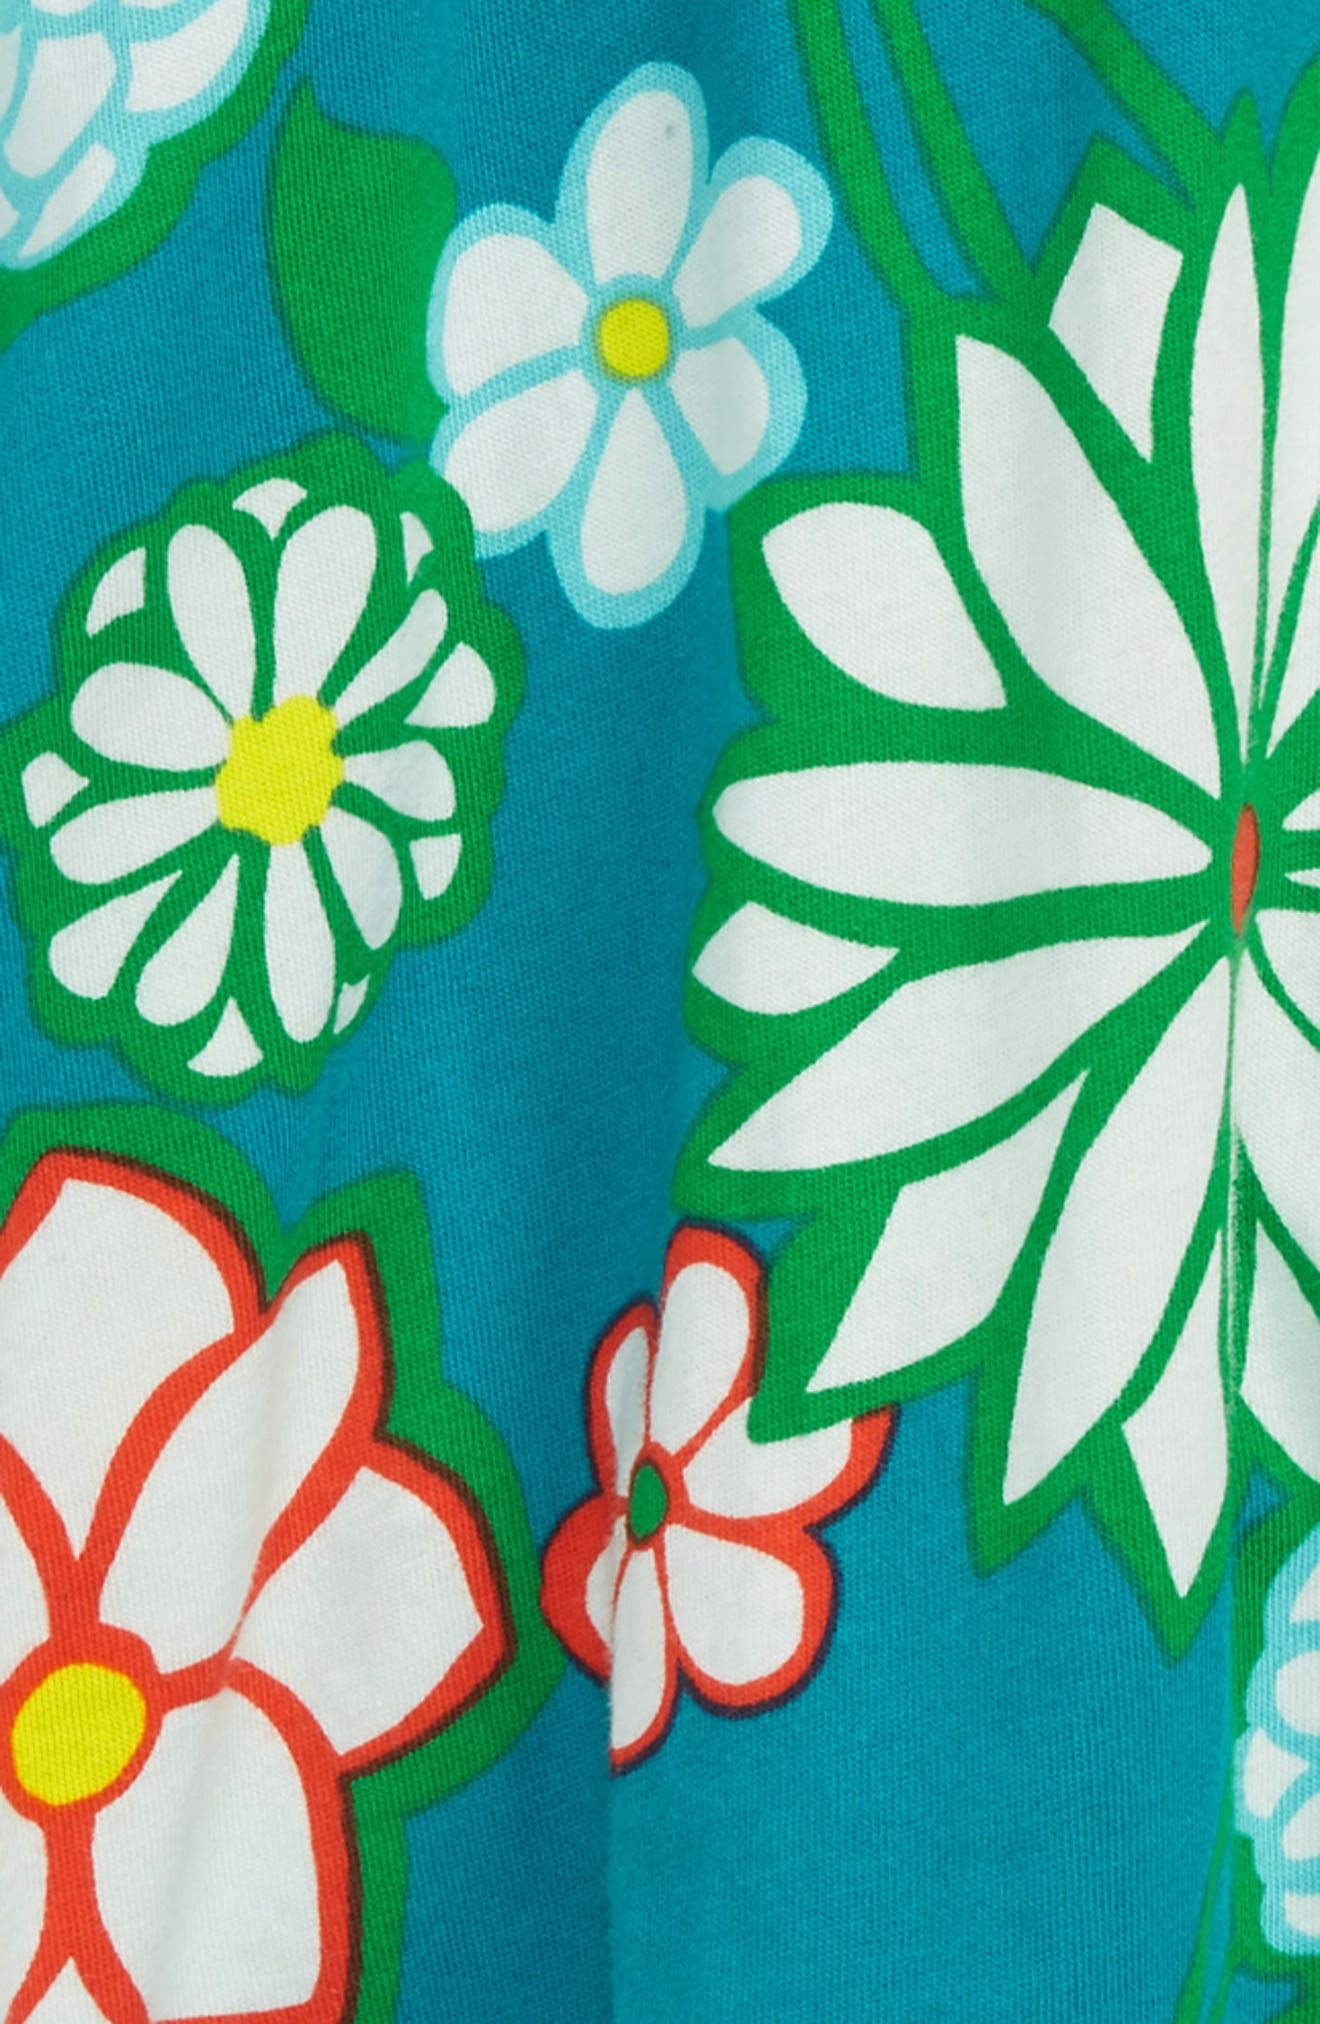 Print Jersey Skort,                             Alternate thumbnail 2, color,                             Ultramarine Green Daisy Grn